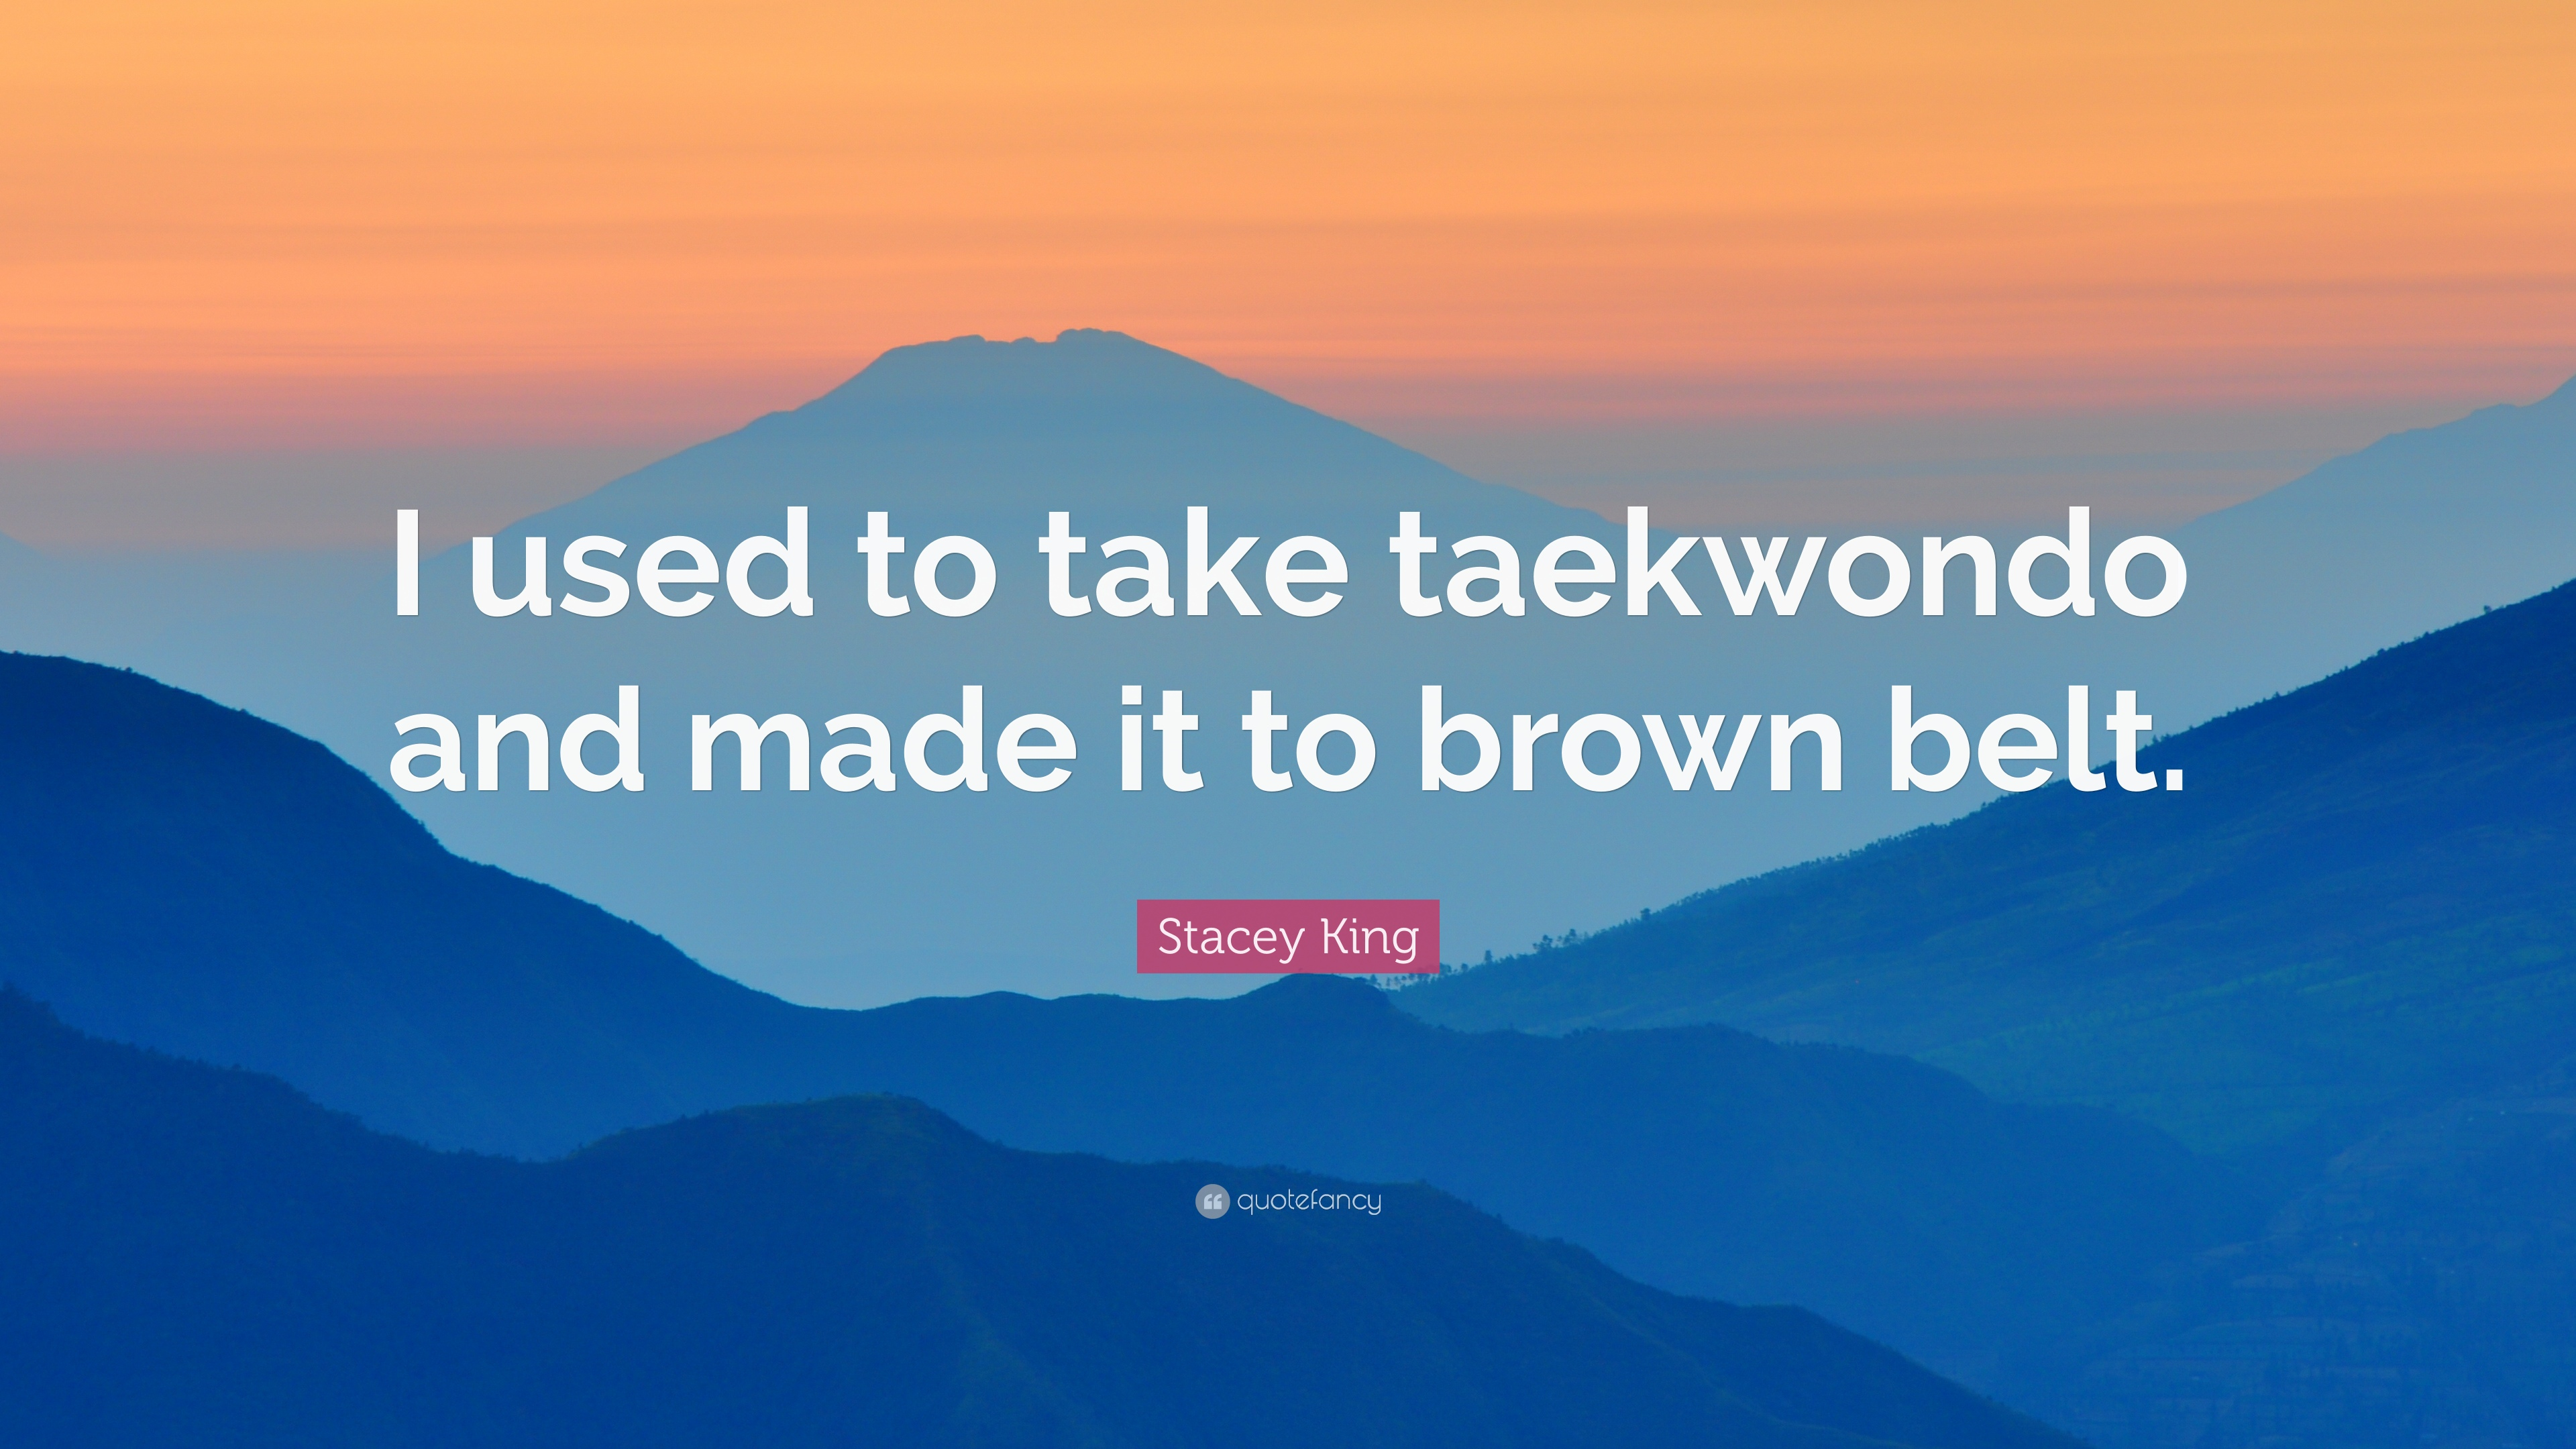 Taekwondo Quotes Stacey King Quotes 14 Wallpapers  Quotefancy